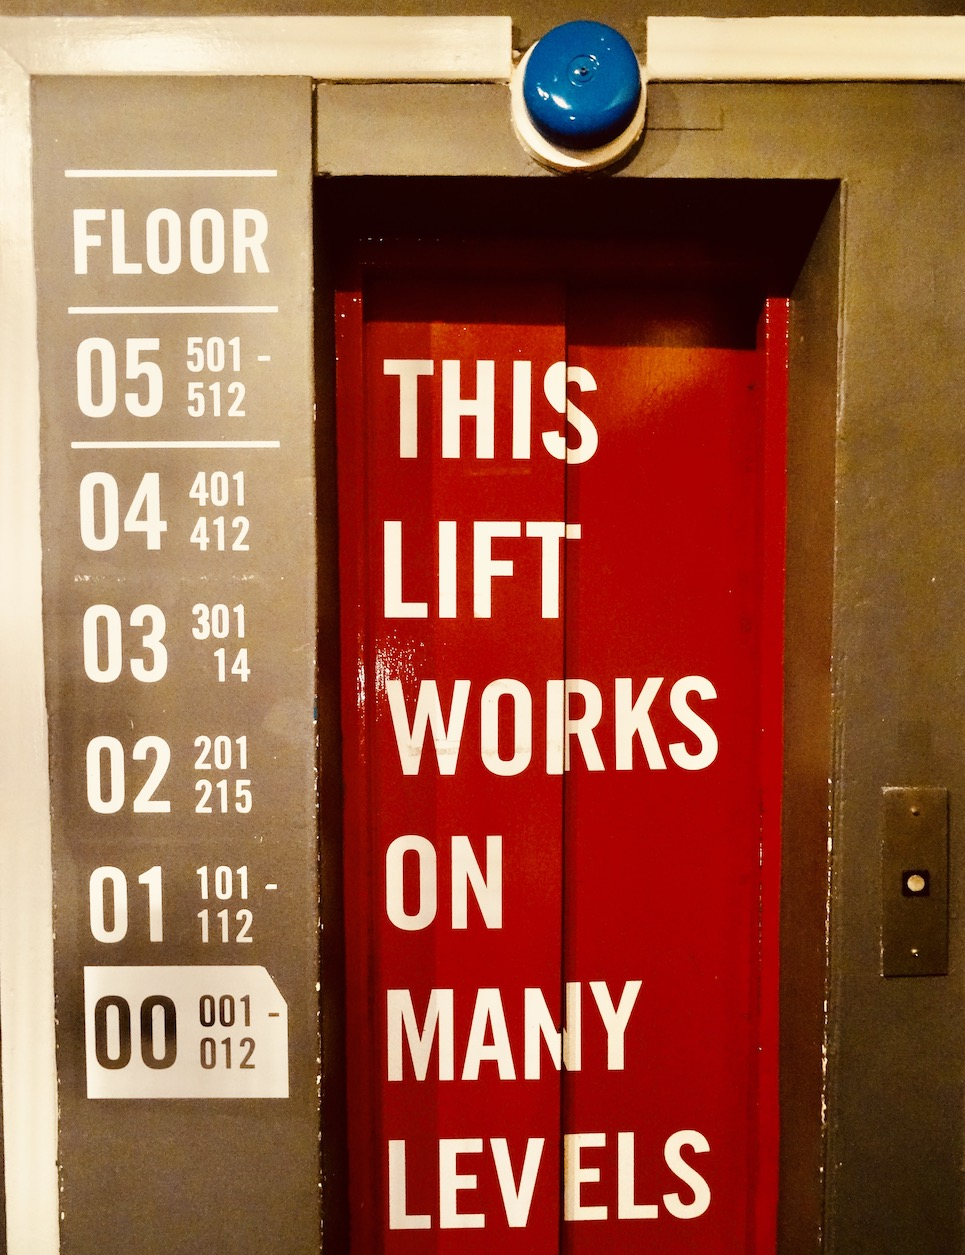 The elevator at Hatters Hostel Liverpool